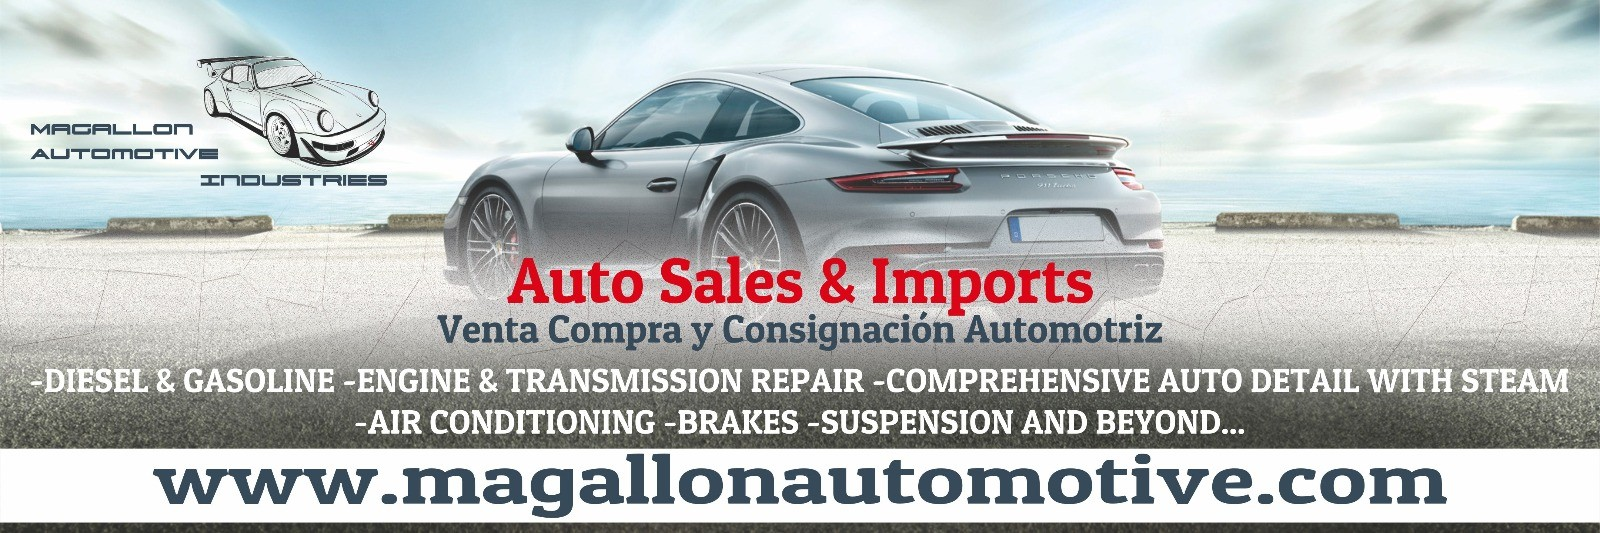 Magallon Automotive